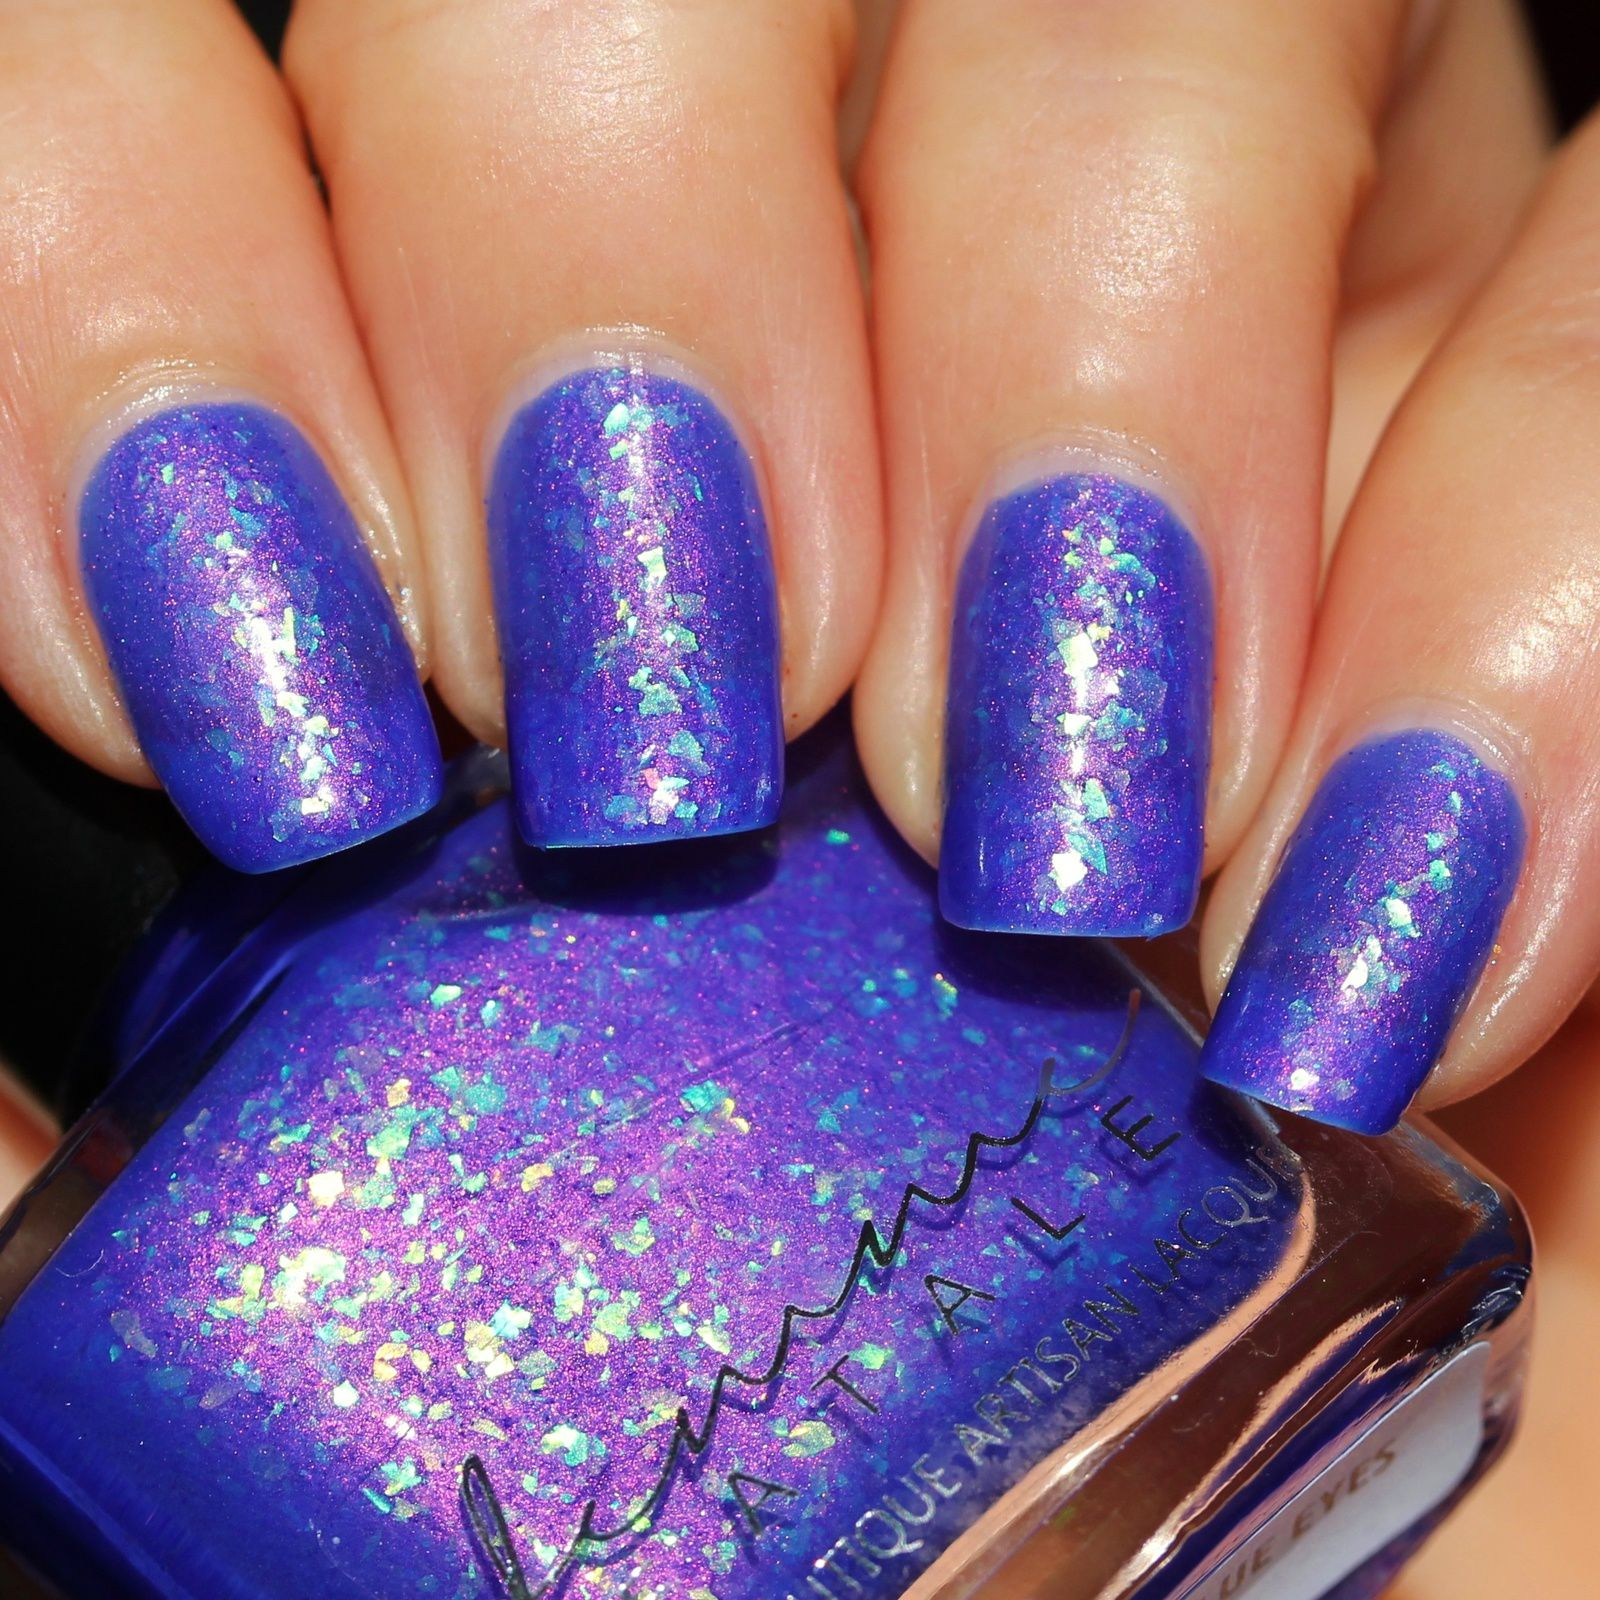 Femme Fatale Cosmetics - Blue-Within-Blue Eyes (3 coats, no top coat, Thermal)